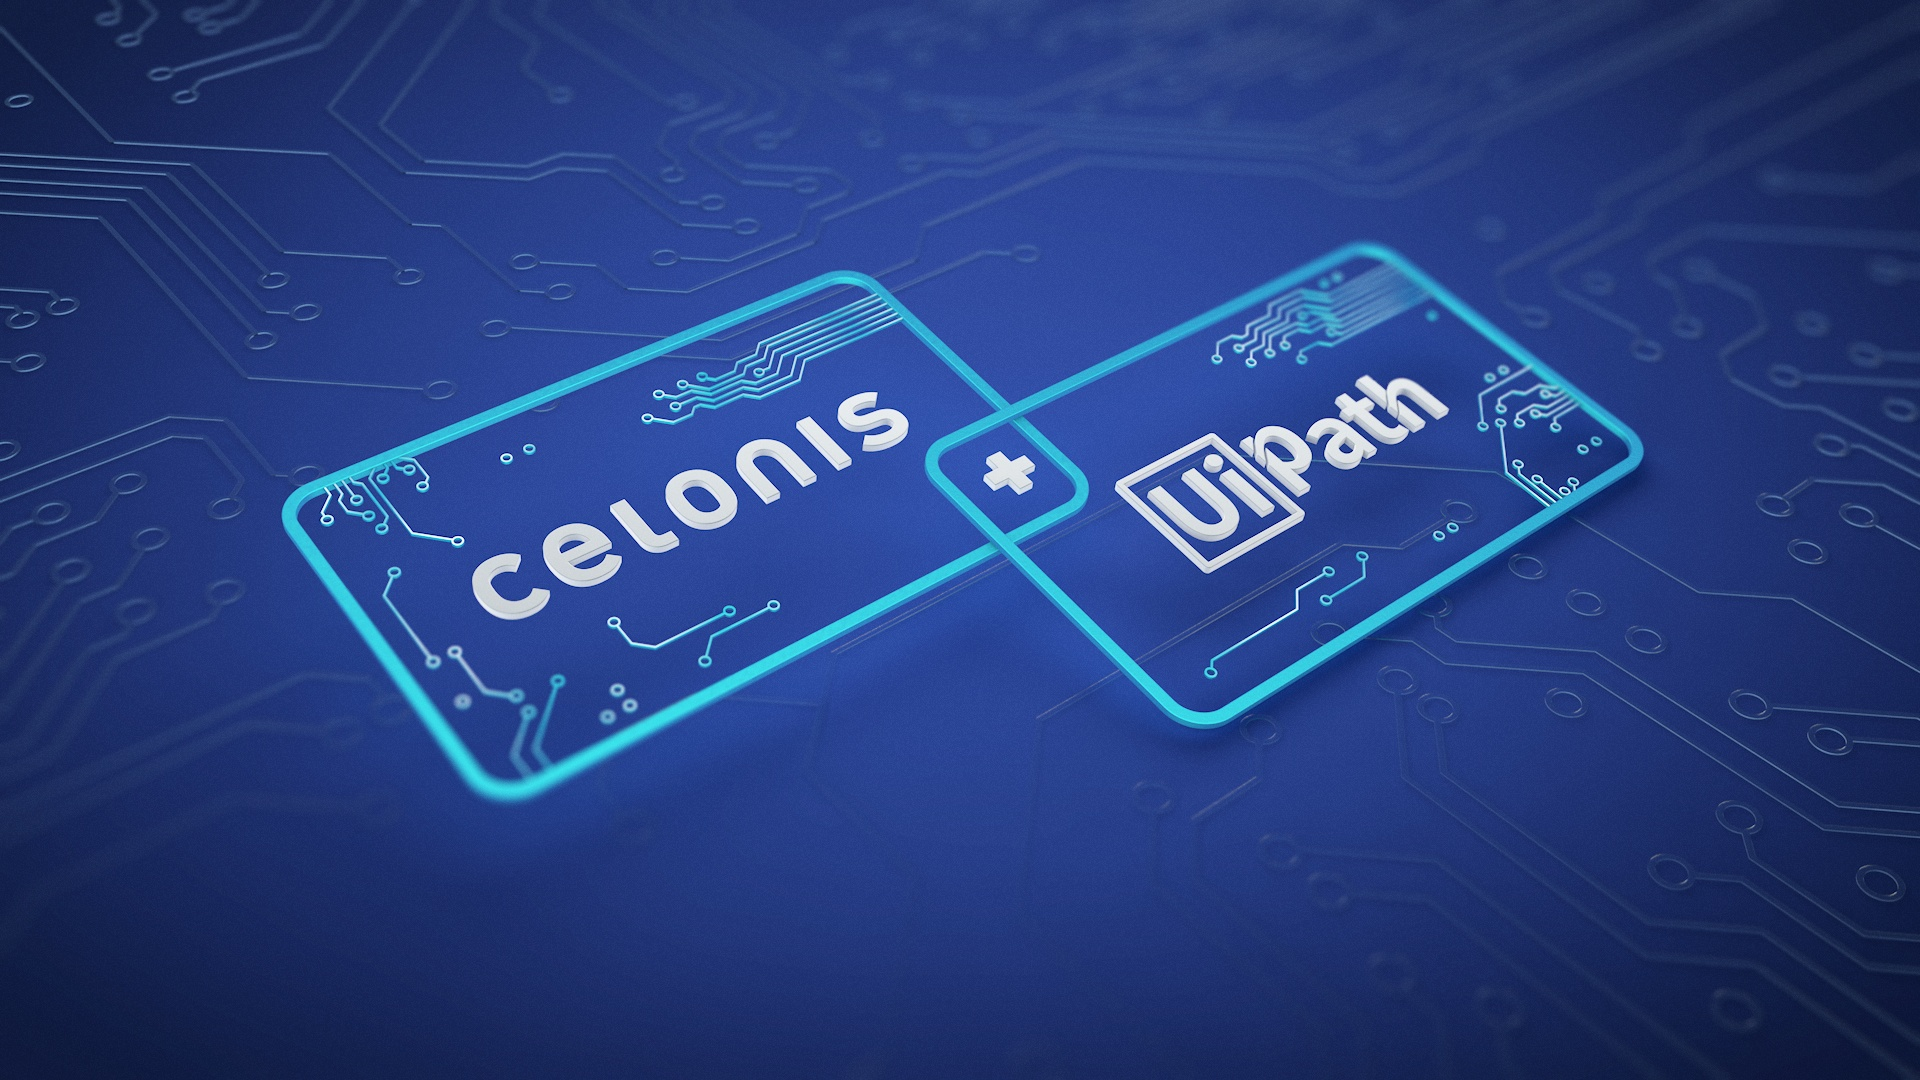 UiPath & Celonis: The Fast Lane to RPA Success